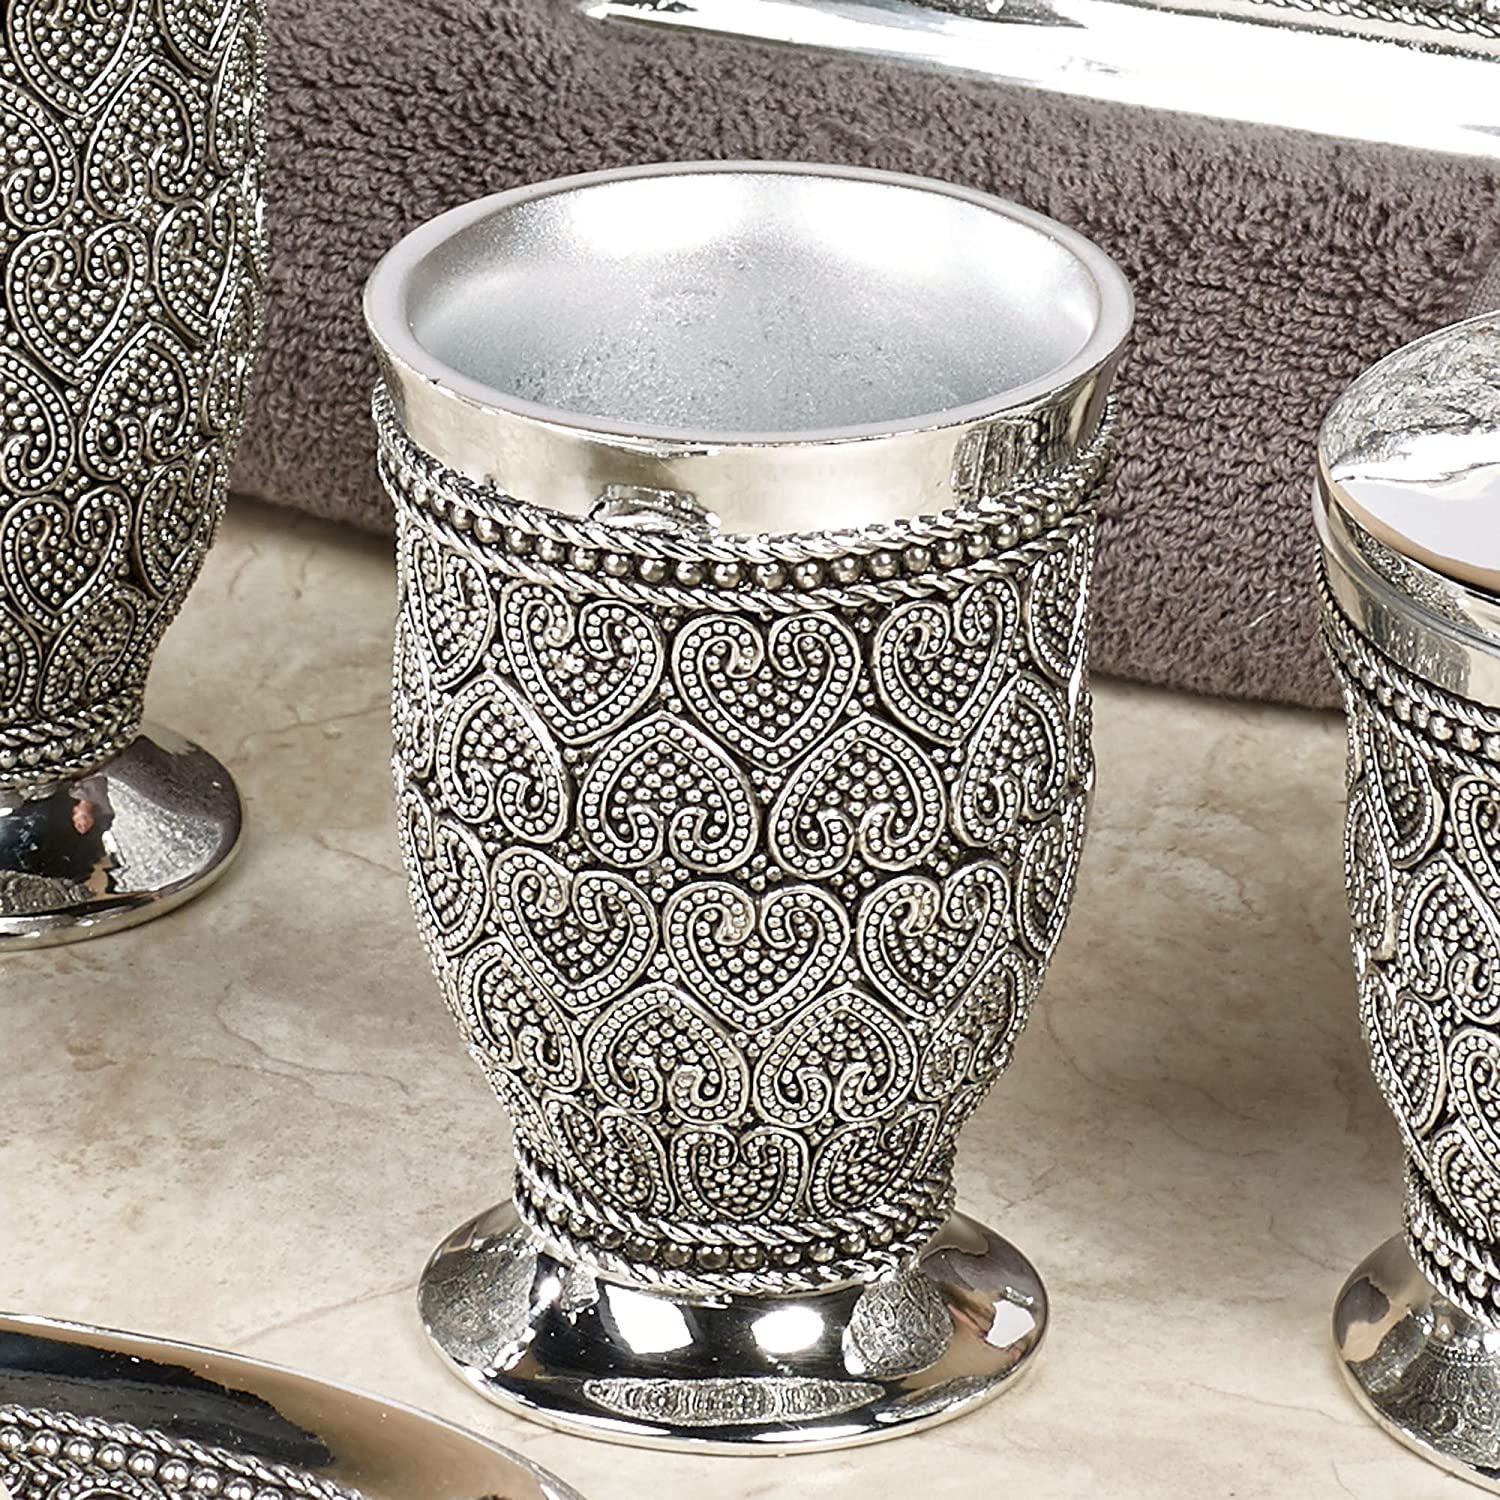 Dorm Desk and Vanity Shiny Finish Chrome Small nu steel BHT5H Beaded Heart Decorative Makeup Brush Cup Holder Tumblers for Bathroom Countertops